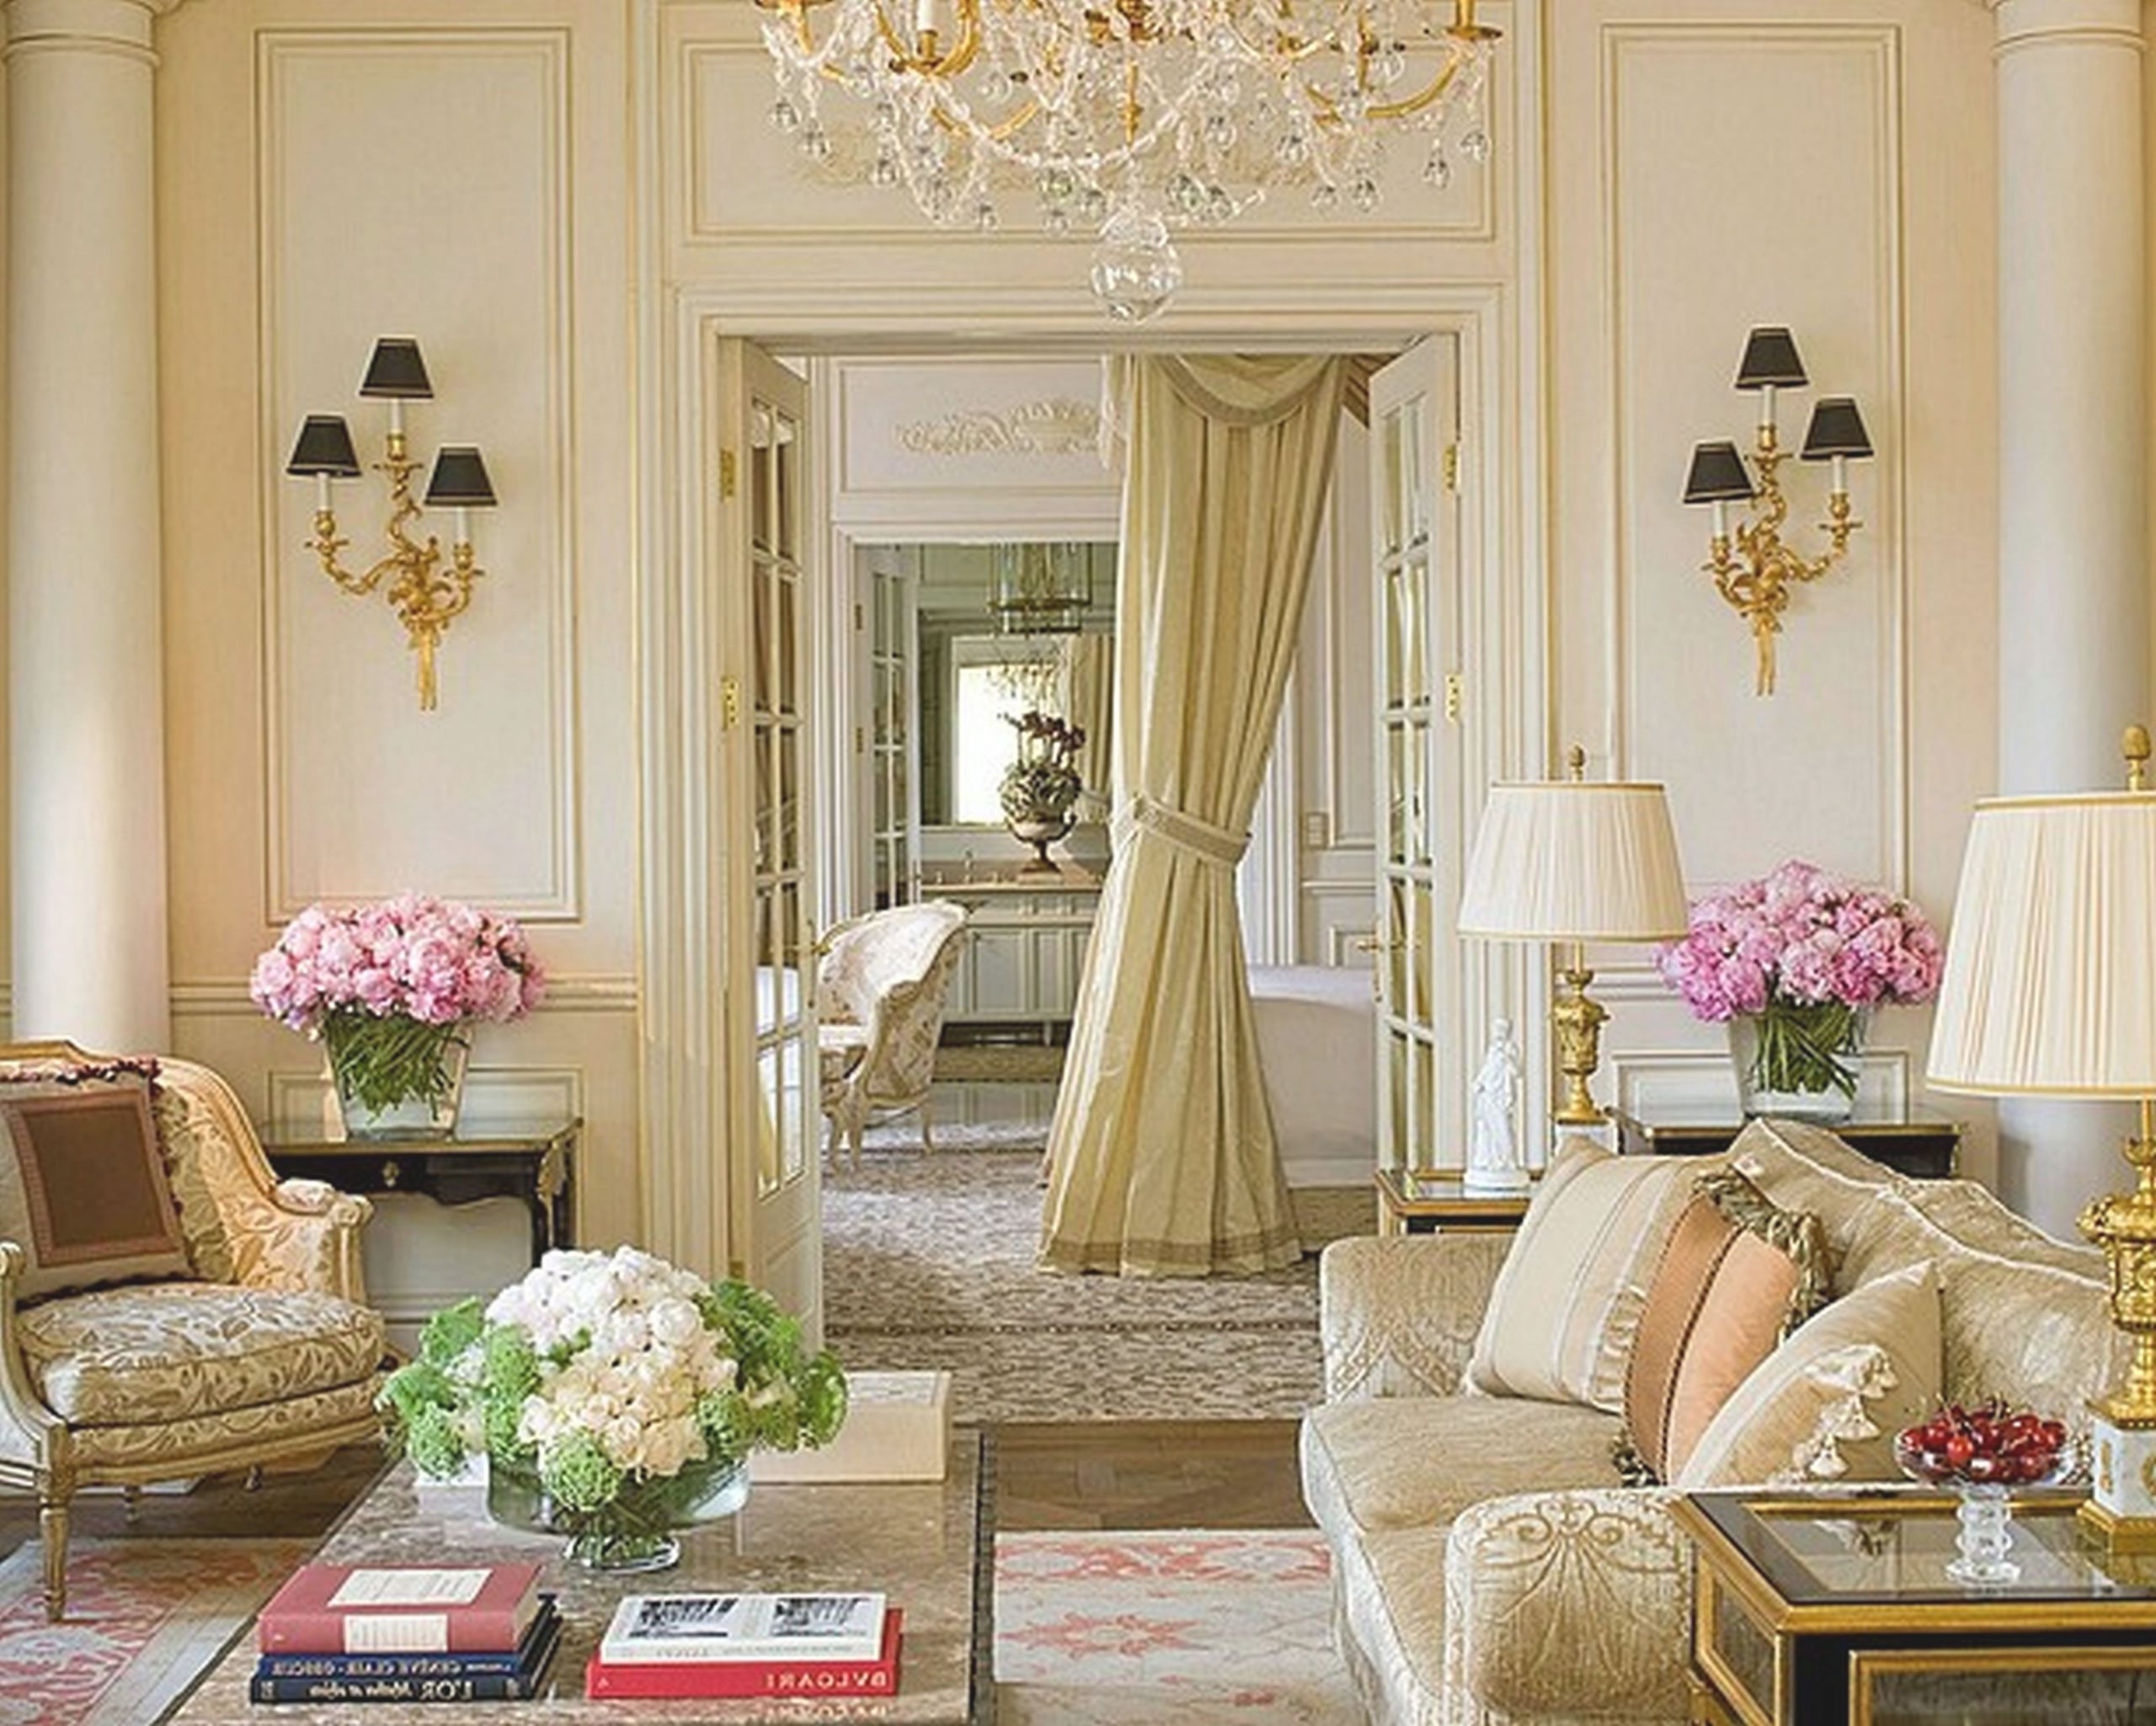 Living Room French Country Decorating Ideas Southern inside French Bedroom Decorating Ideas